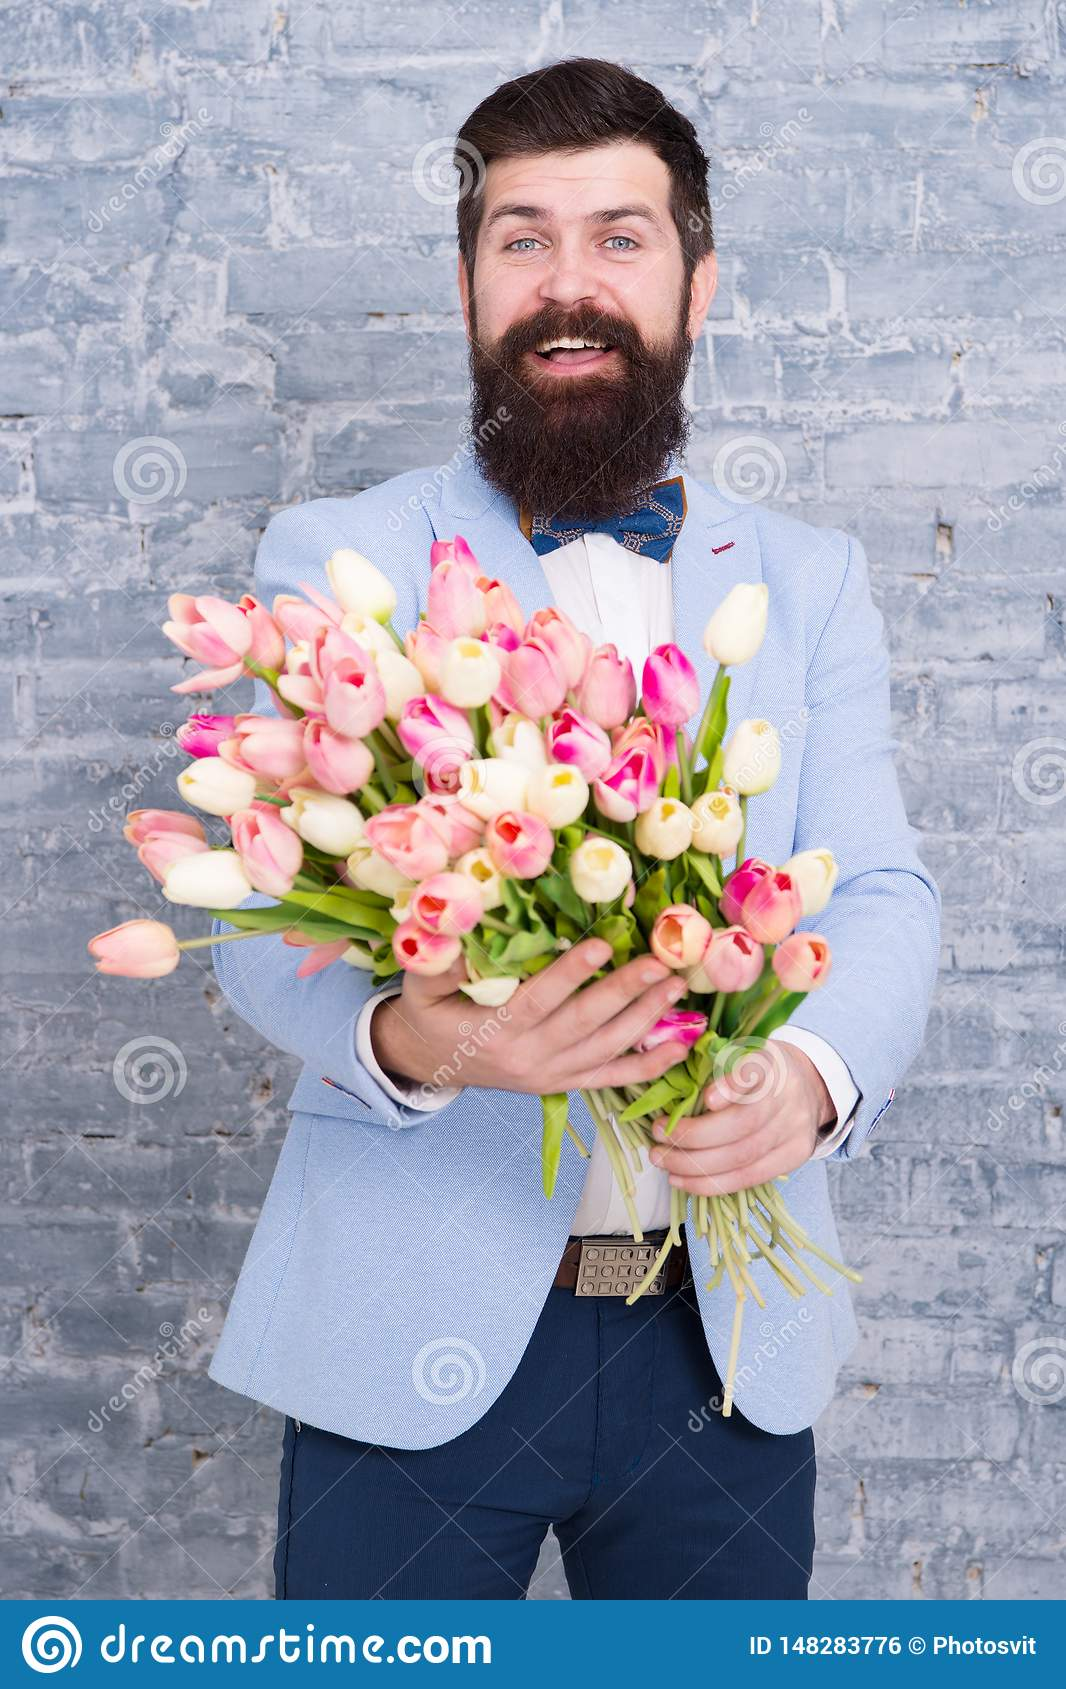 Where dreams become reality. Womens day. Flower for March 8. Spring day. Bearded man with flowers. Bearded man with